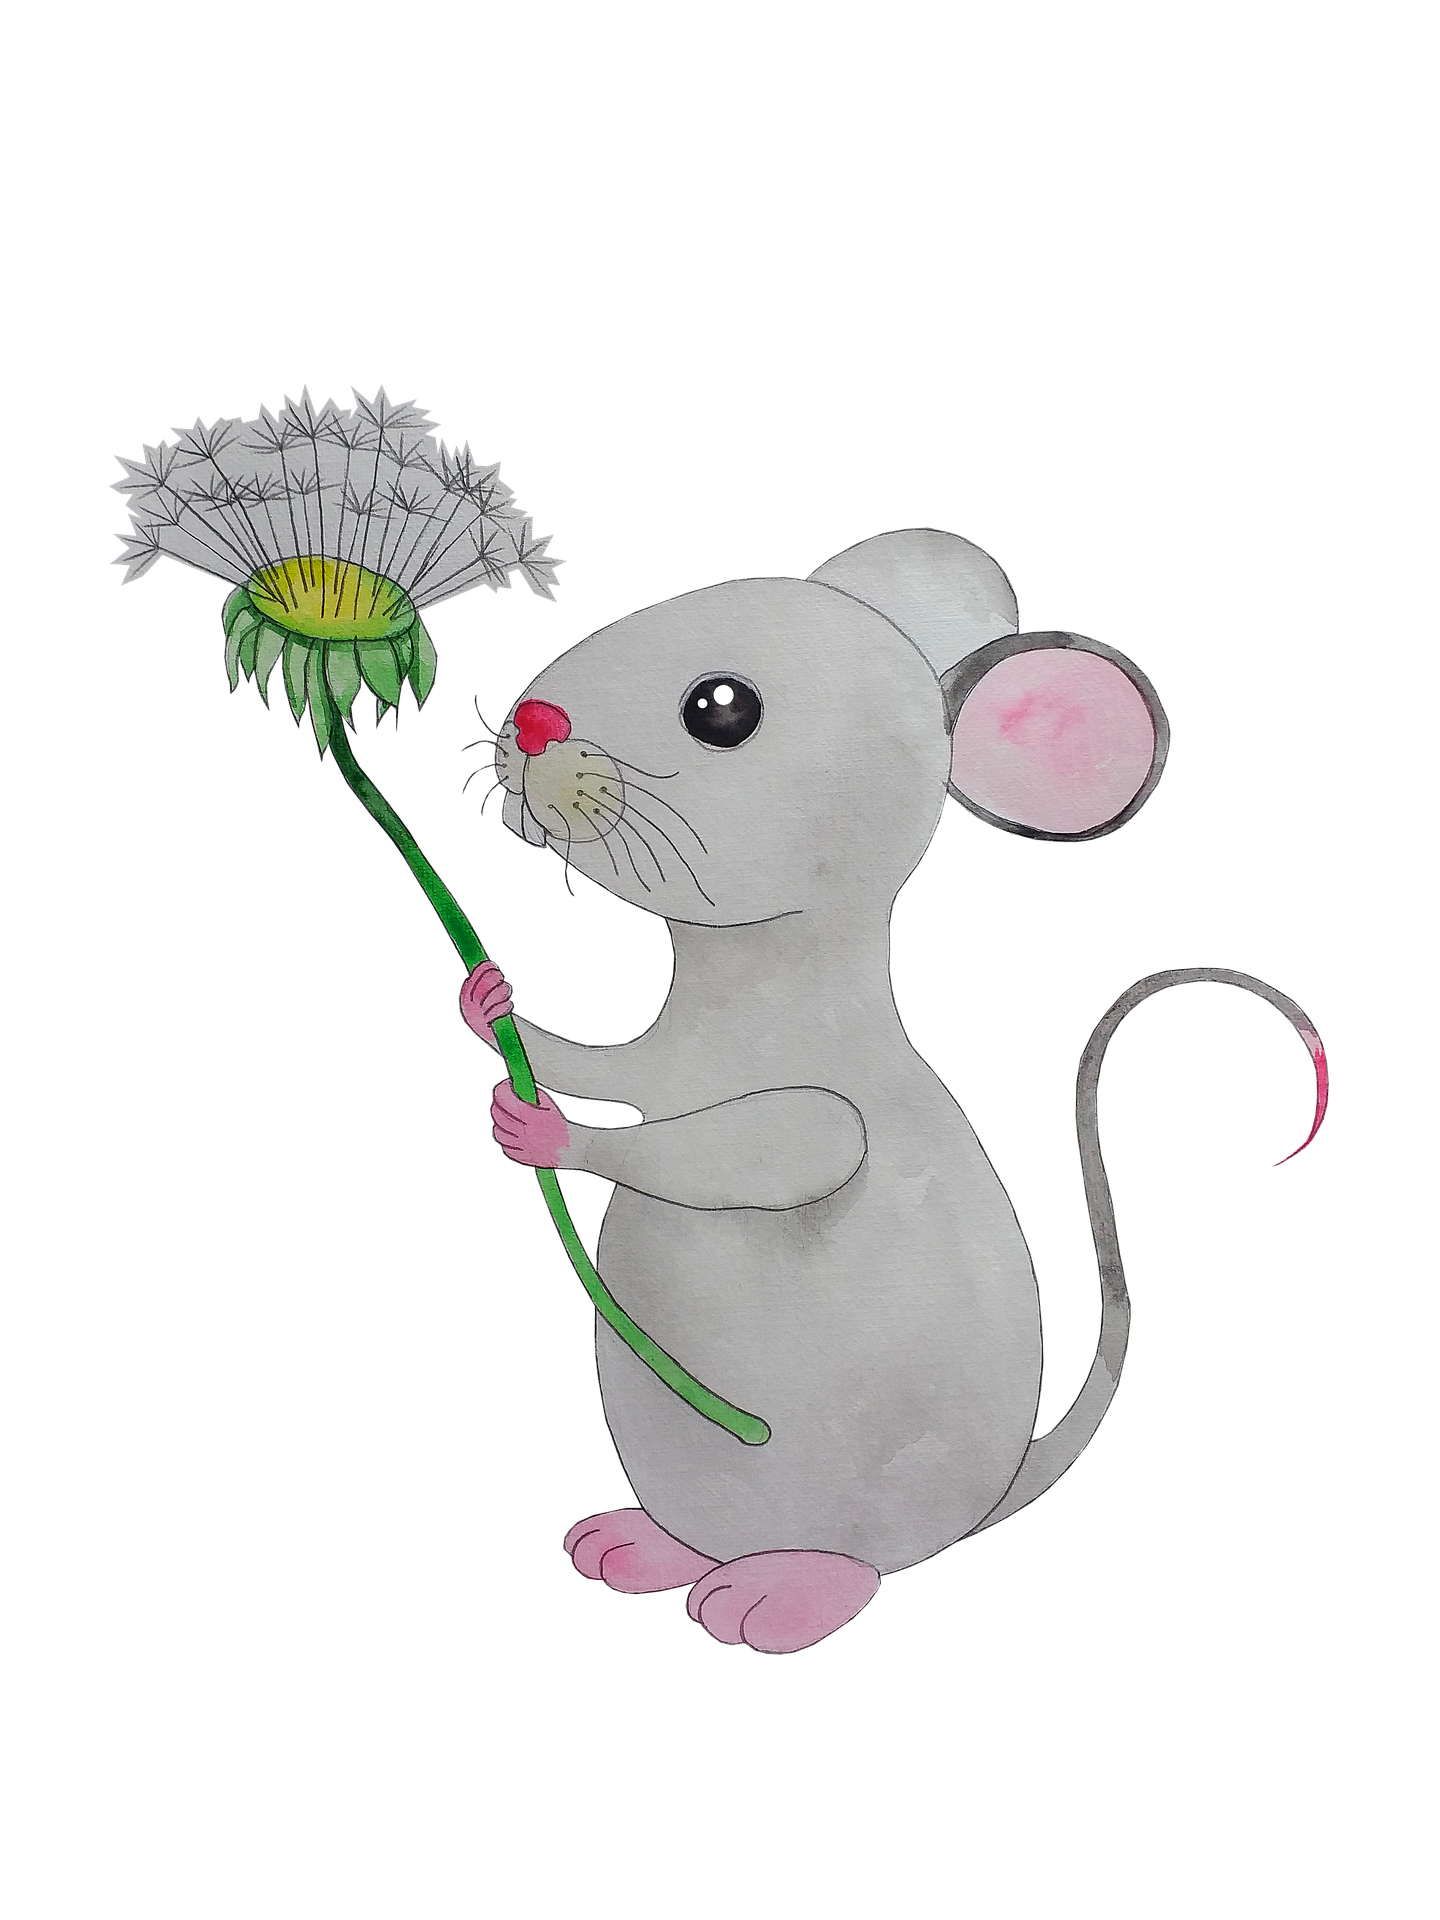 mouse-5718036_1920.png